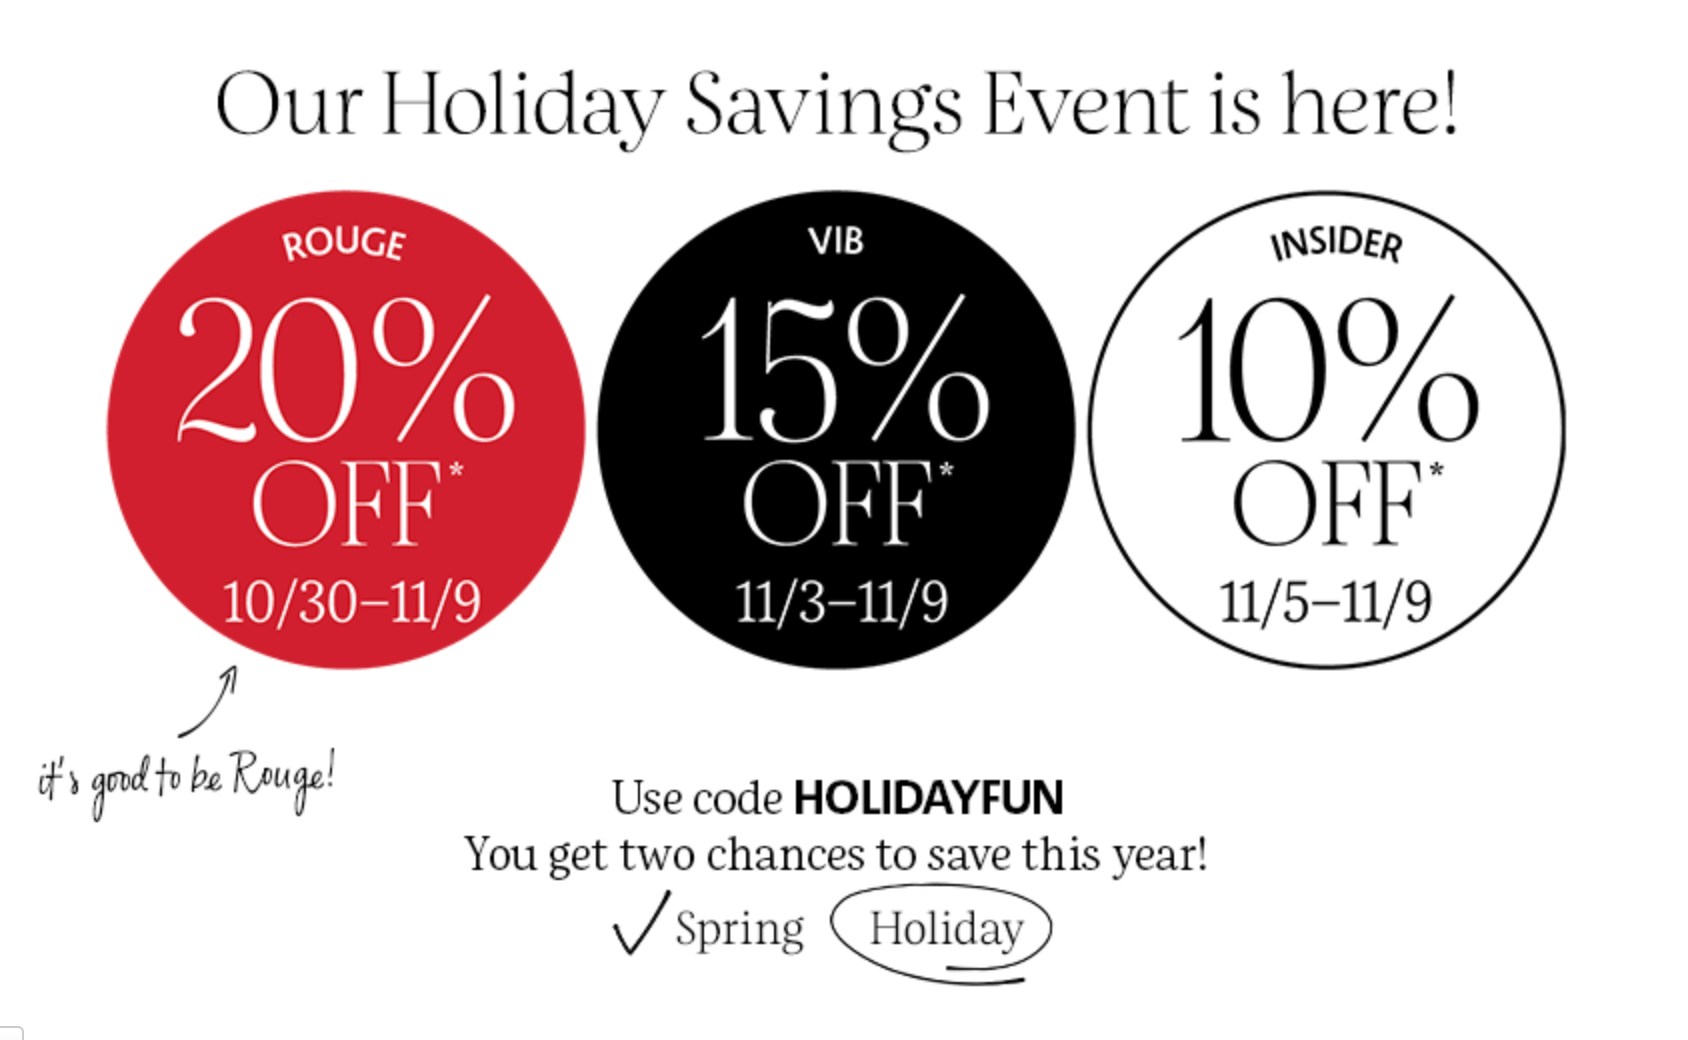 Sephora Beauty Insider Sale by popular Monterey beauty blog, Haute Beauty Guide: image of a Sephora Beauty Insider discount code.